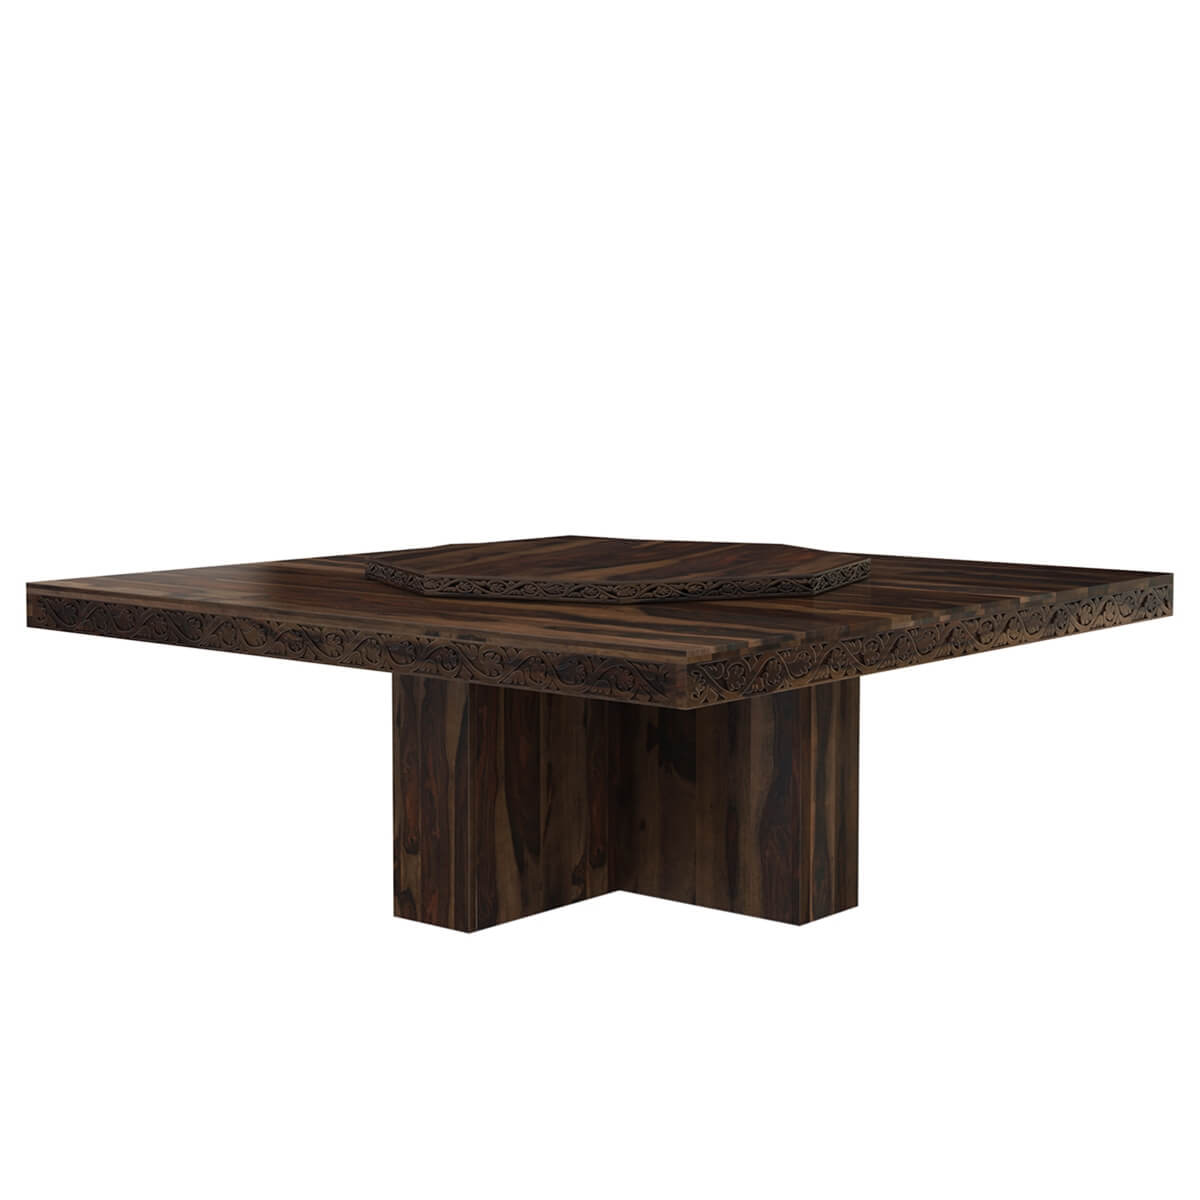 Glacier rustic square dining table rustic log furniture by amish - Square Rustic Dining Table